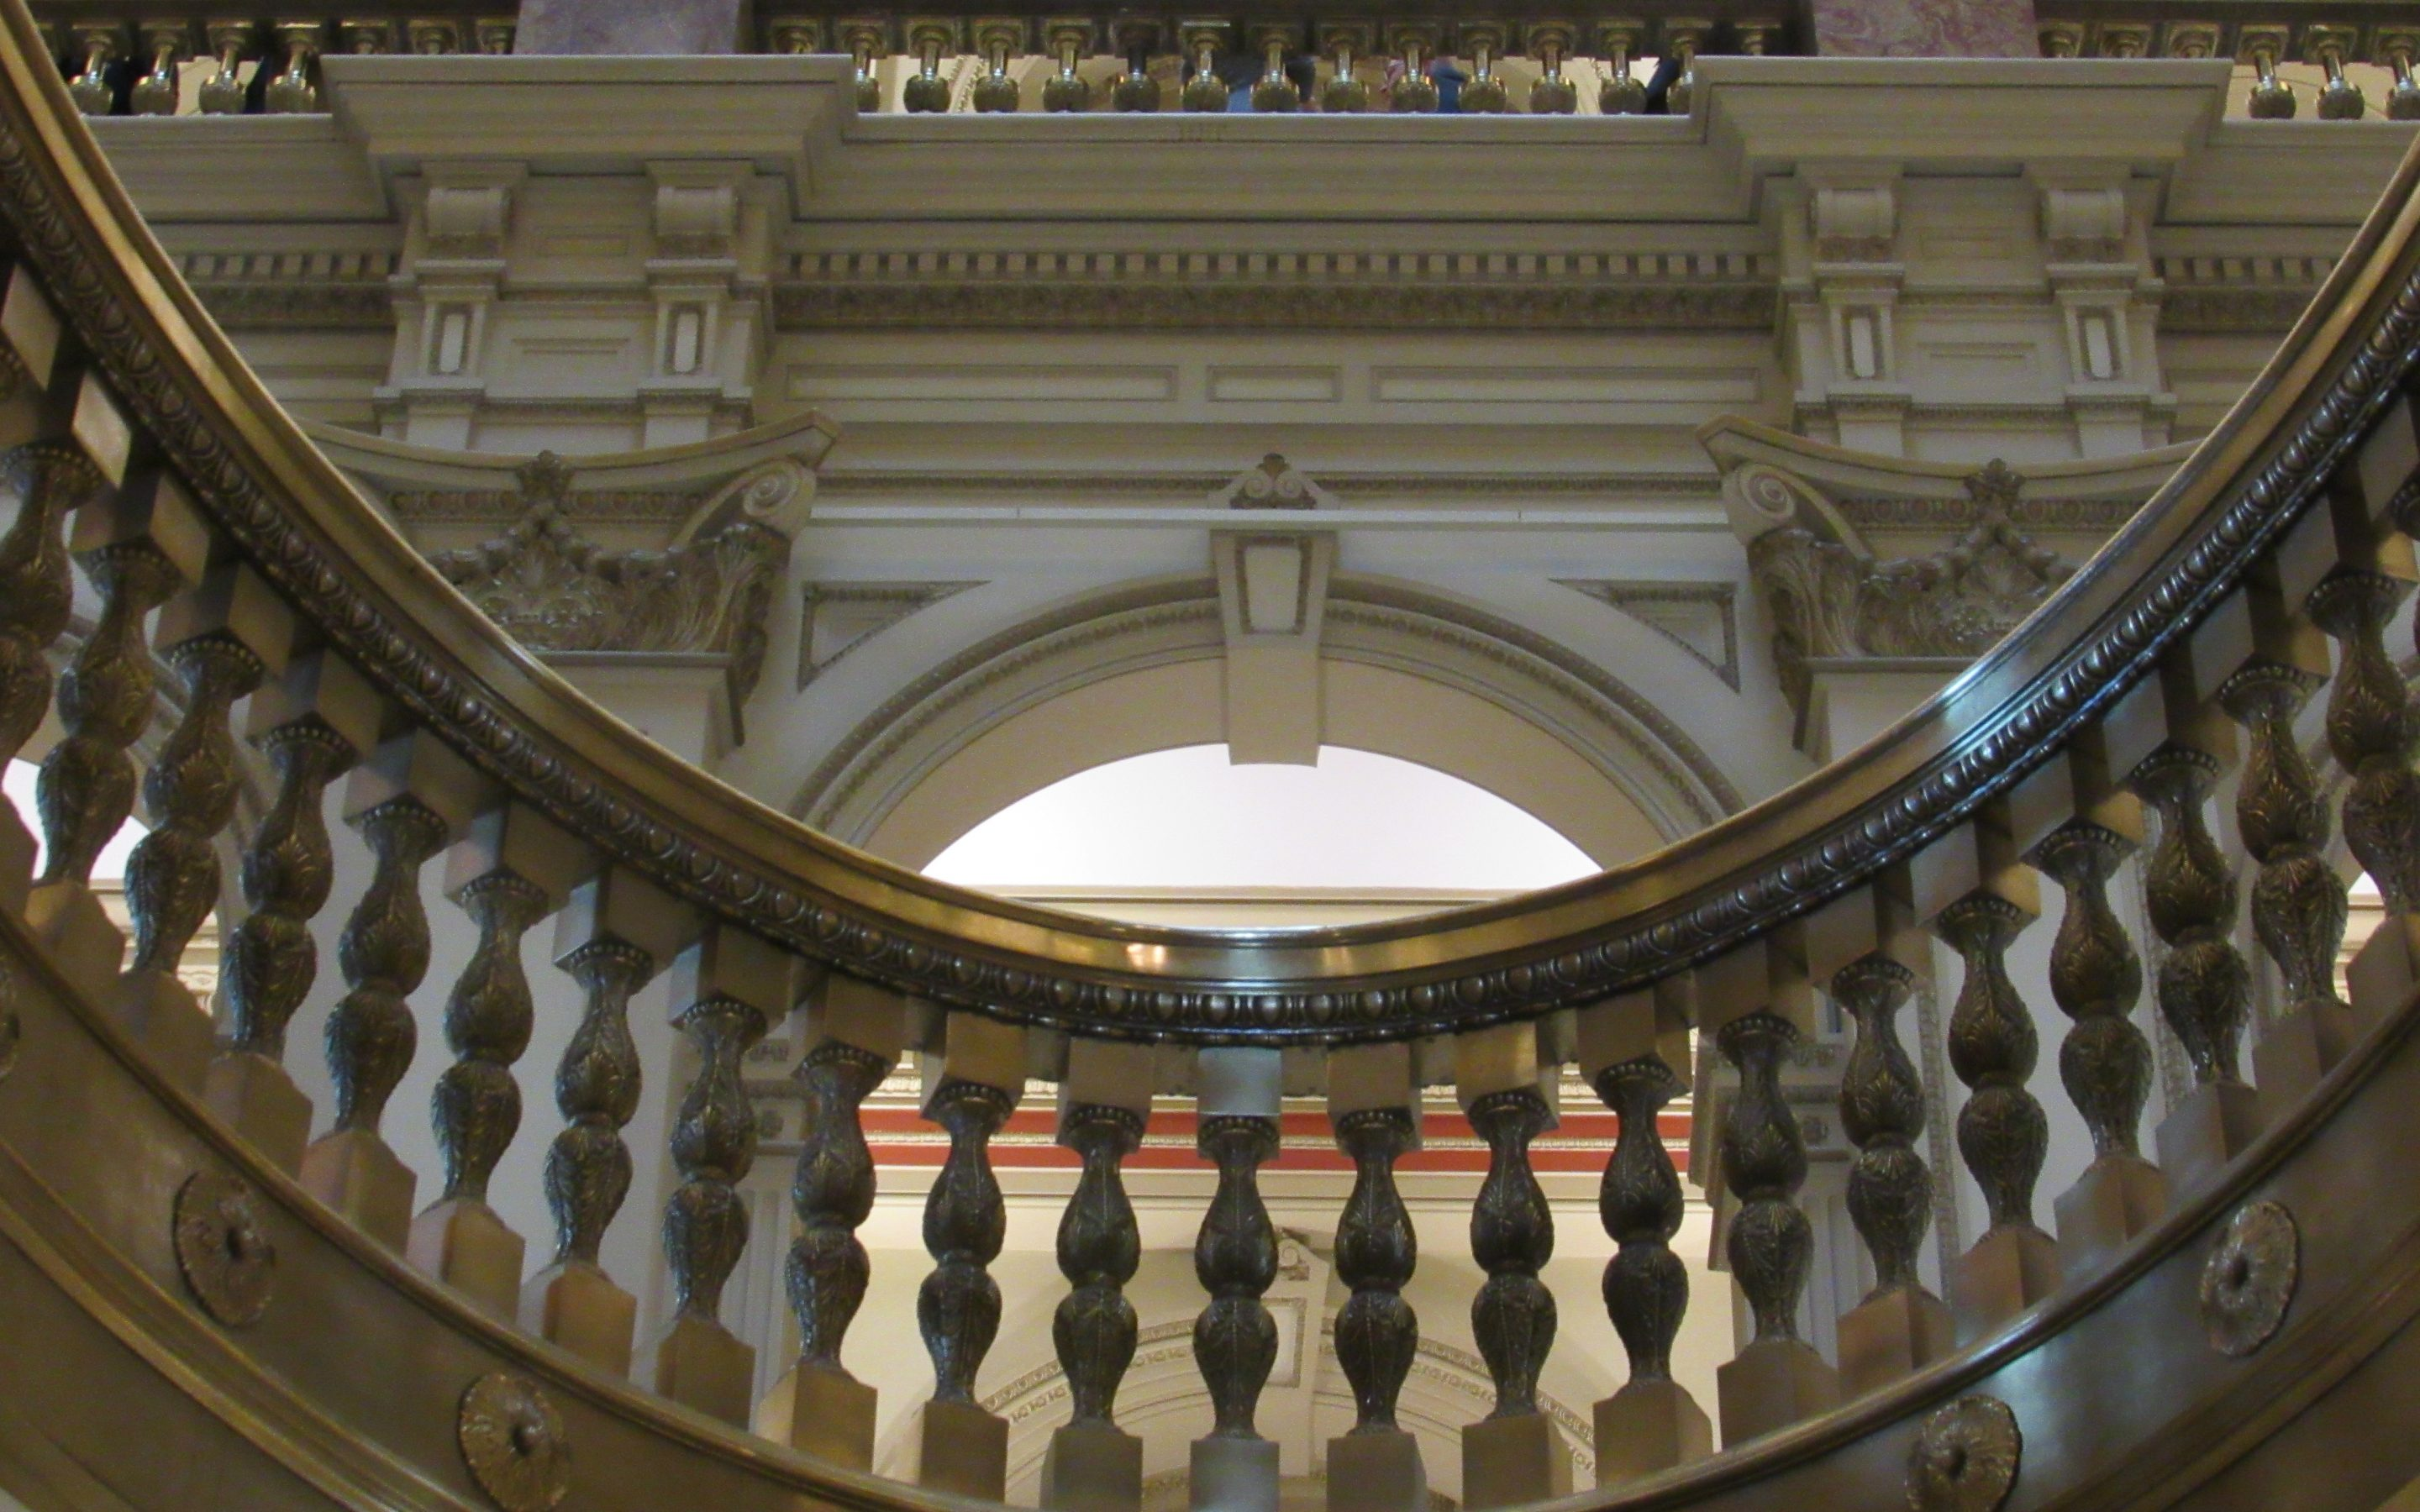 Inside the Colorado State Capitol.